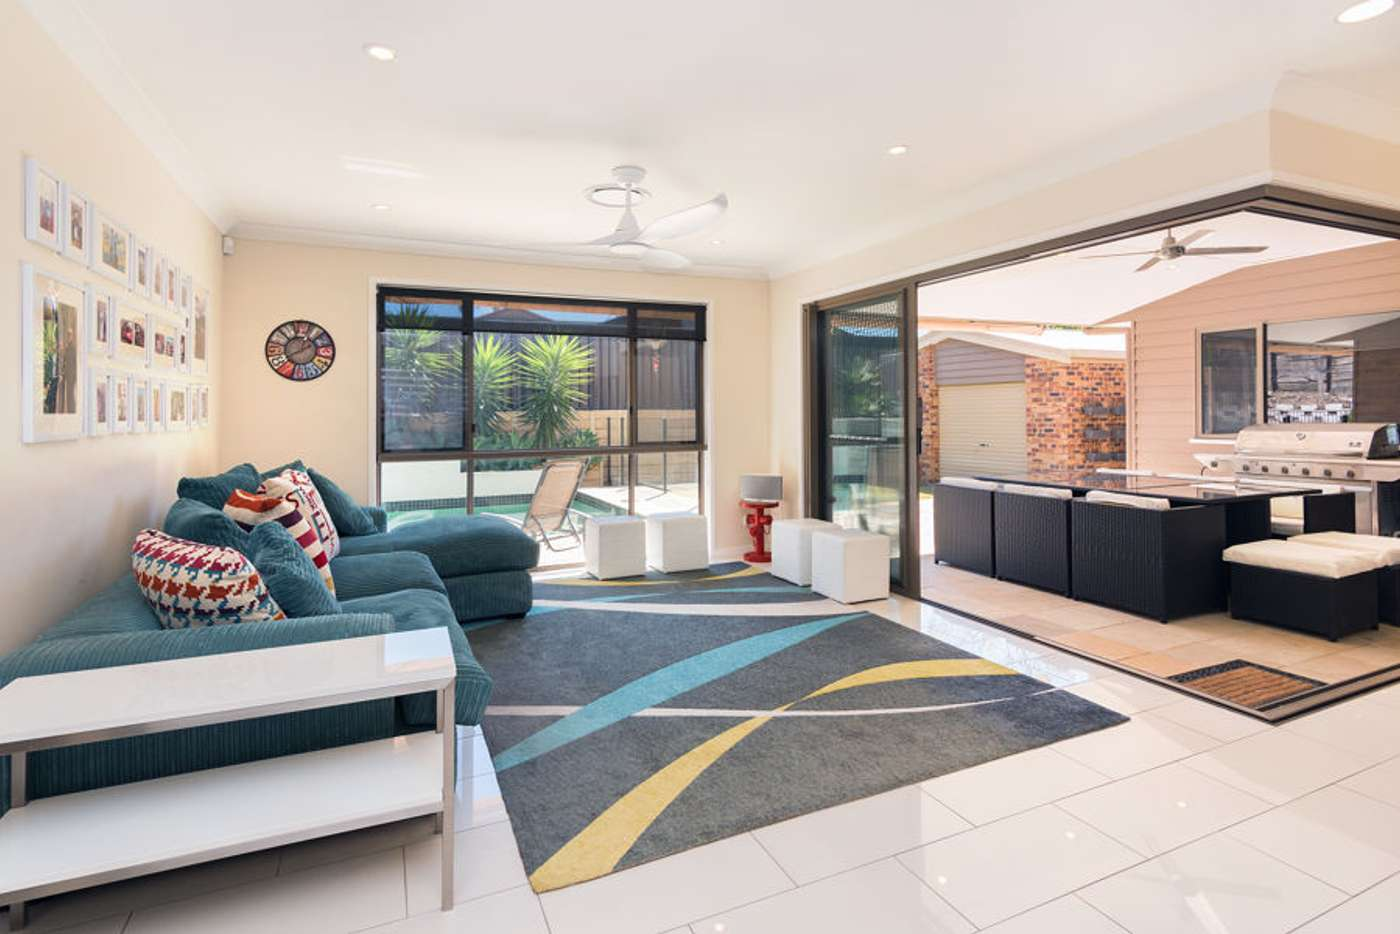 Fifth view of Homely house listing, 7 Glenalwyn Street, Holland Park QLD 4121